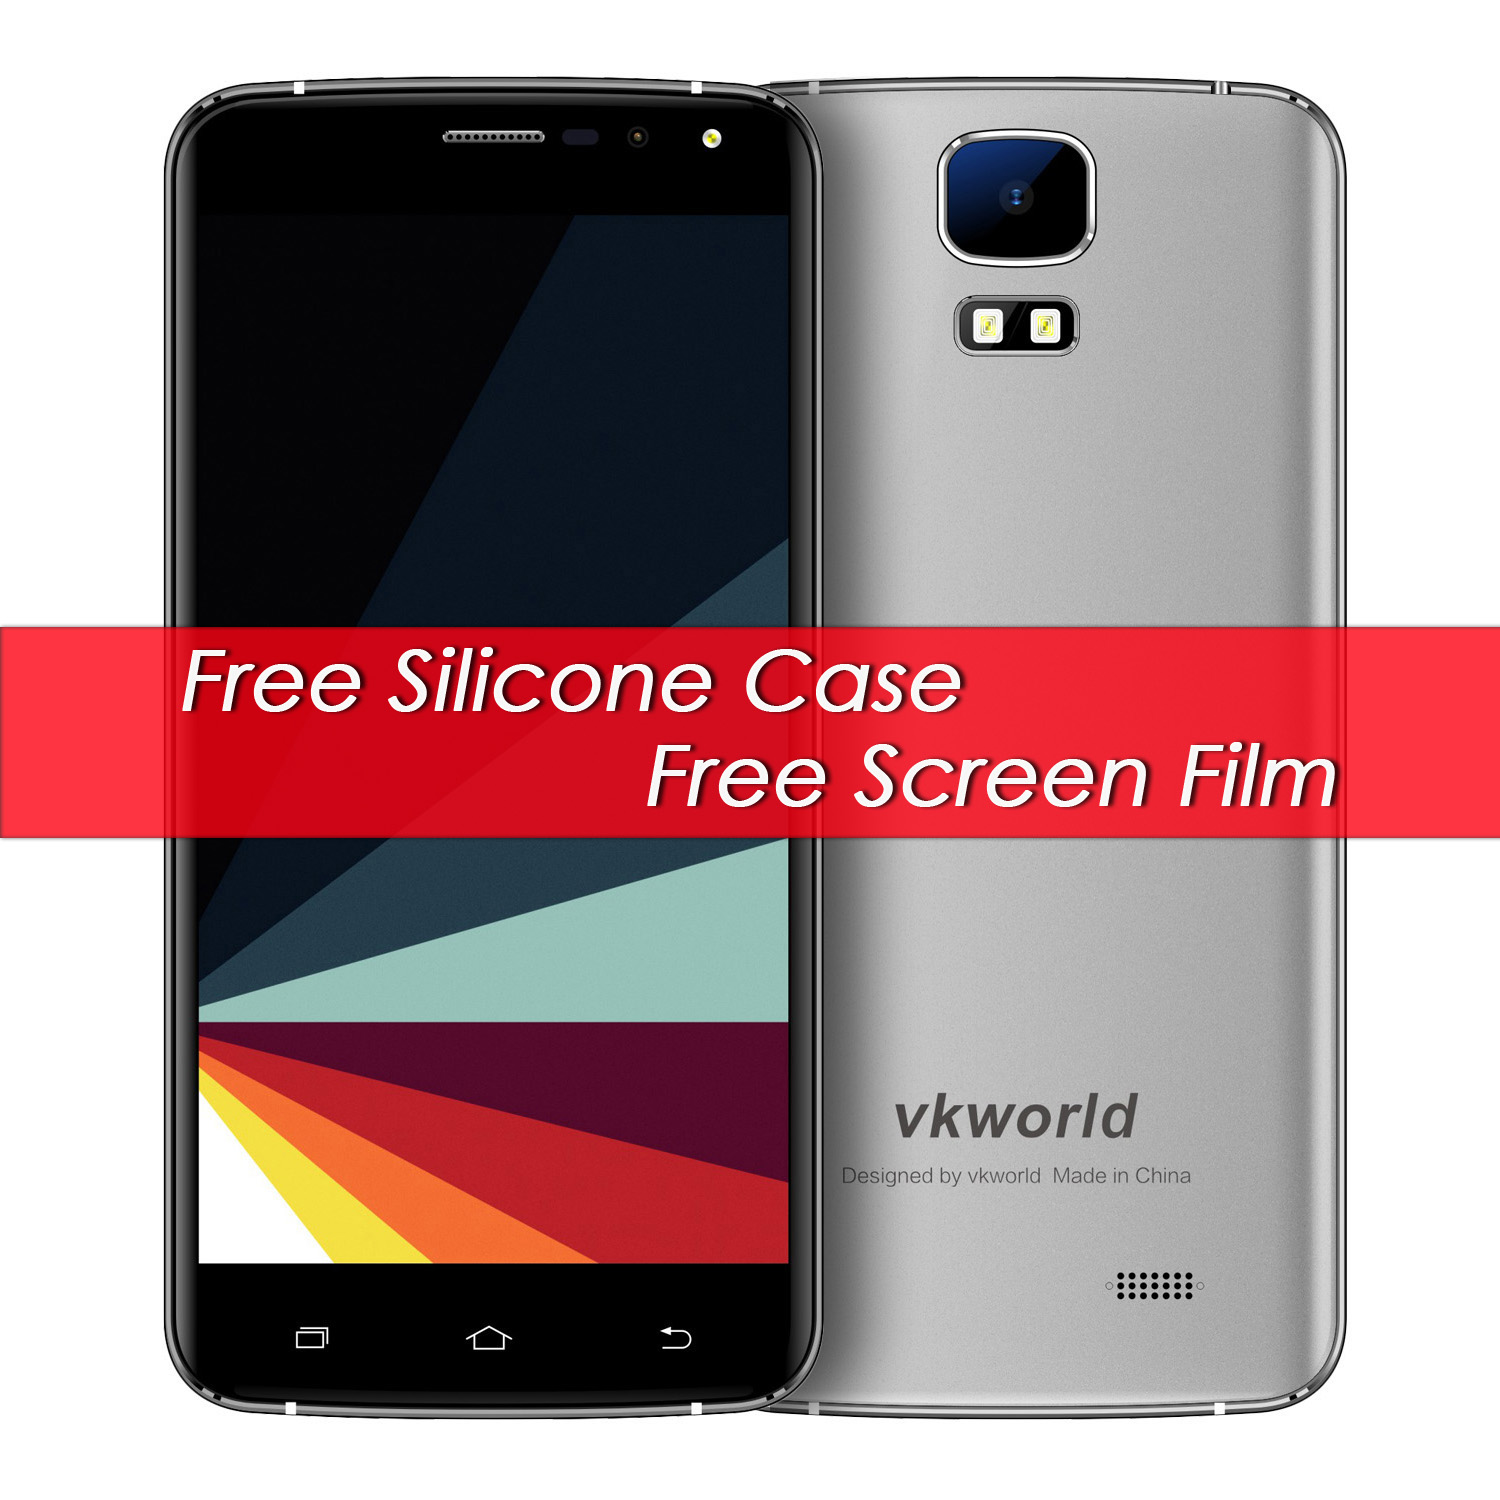 New Vkworld S3 Android 7 0 3G Mobile Phone MTK6580A Quad Core 1 3Ghz 1G RAM